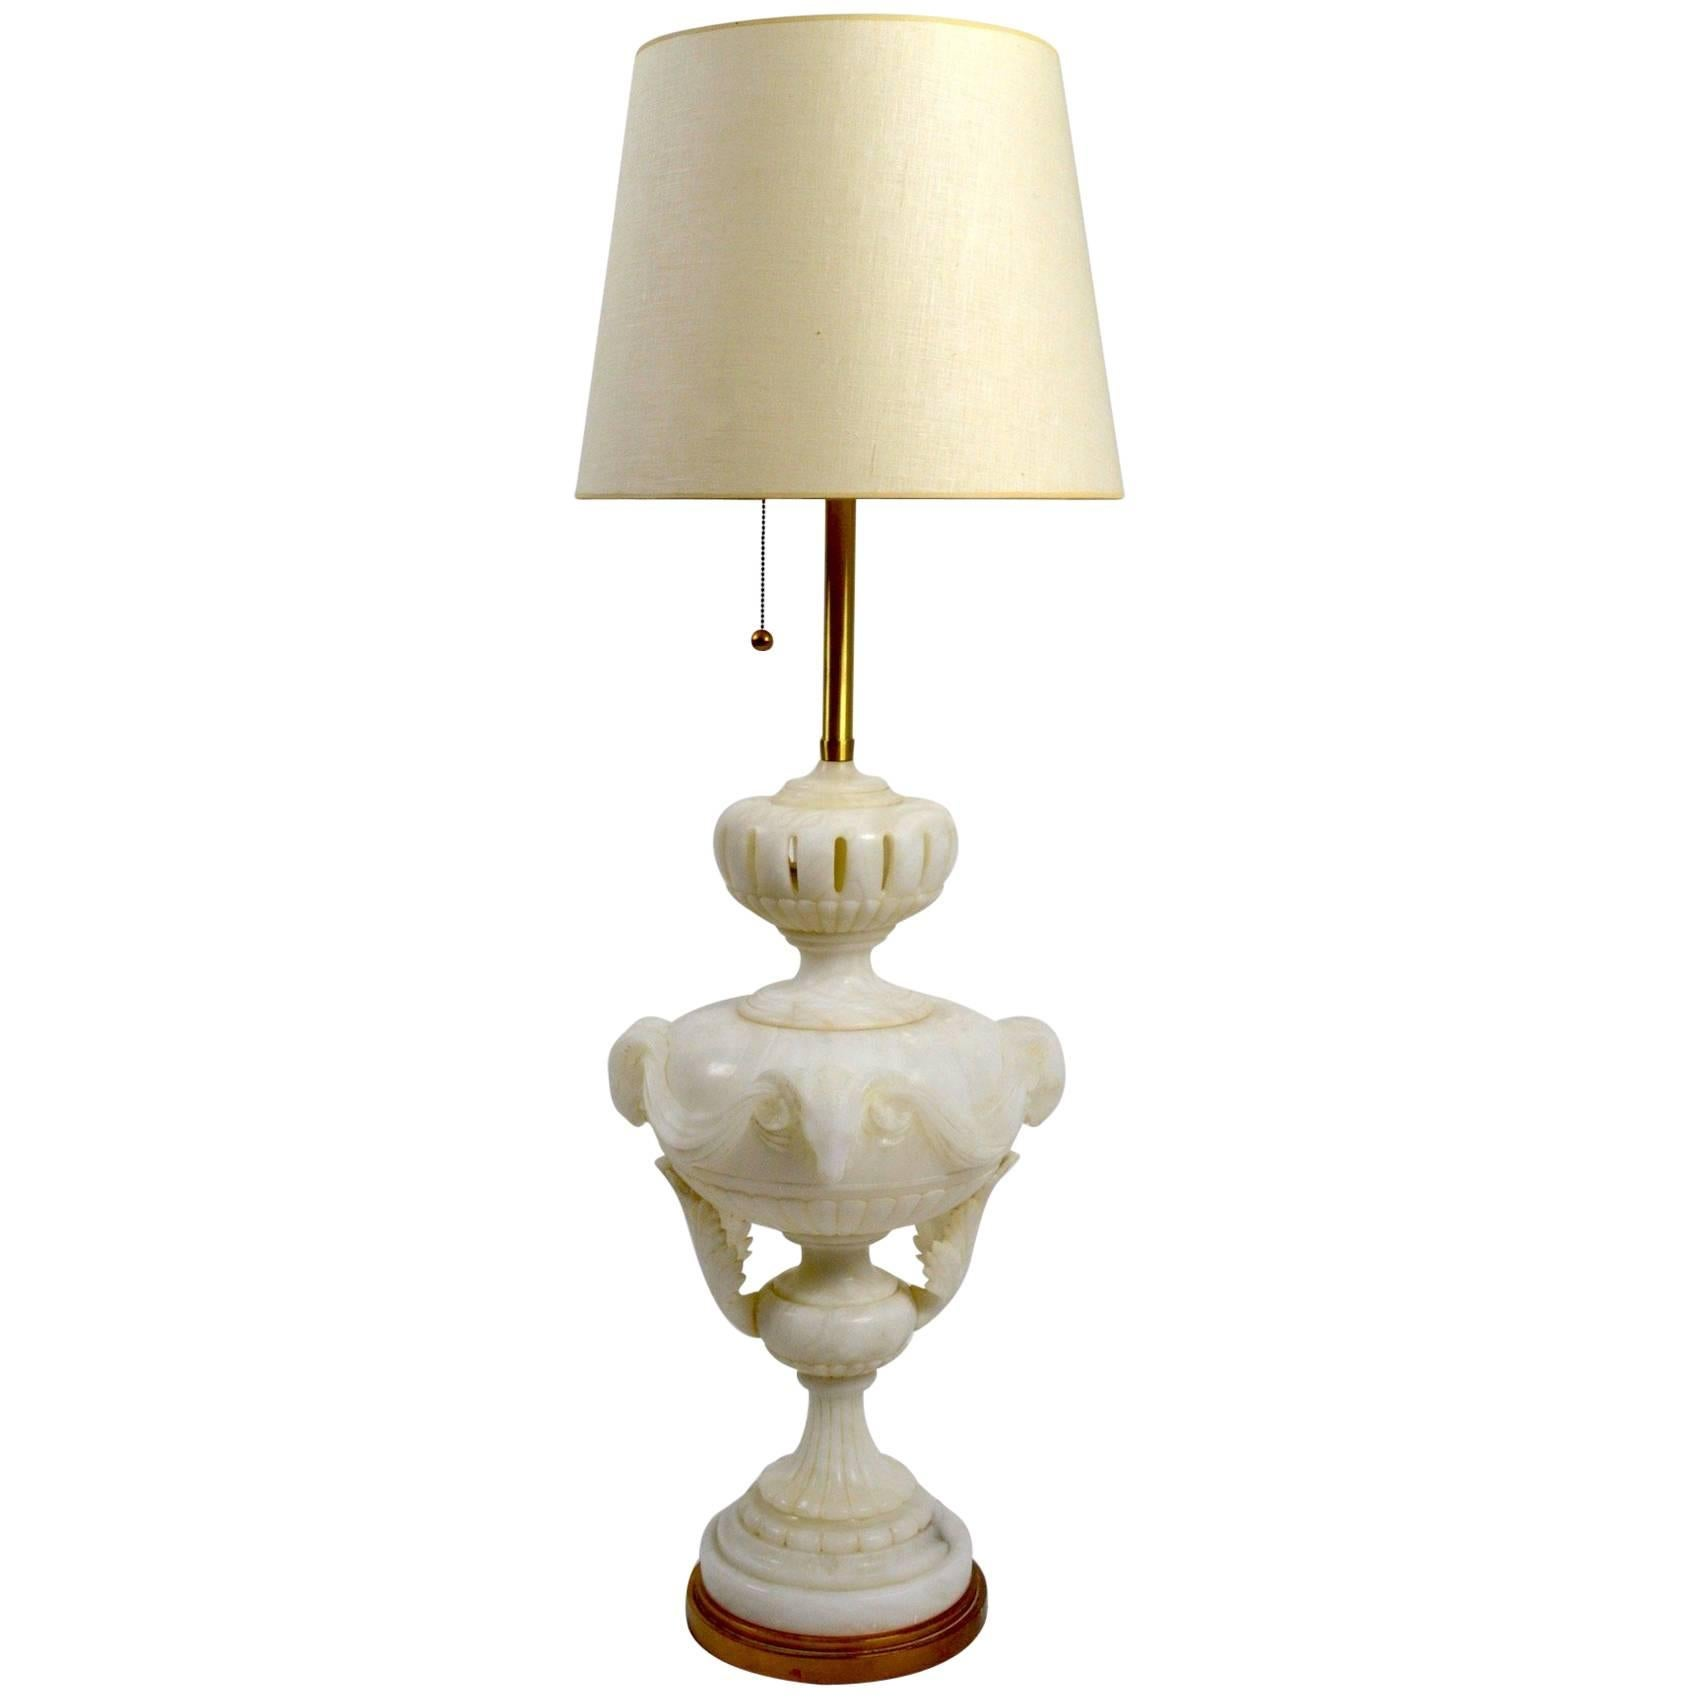 Massive Alabaster Lamp by Marbro Co